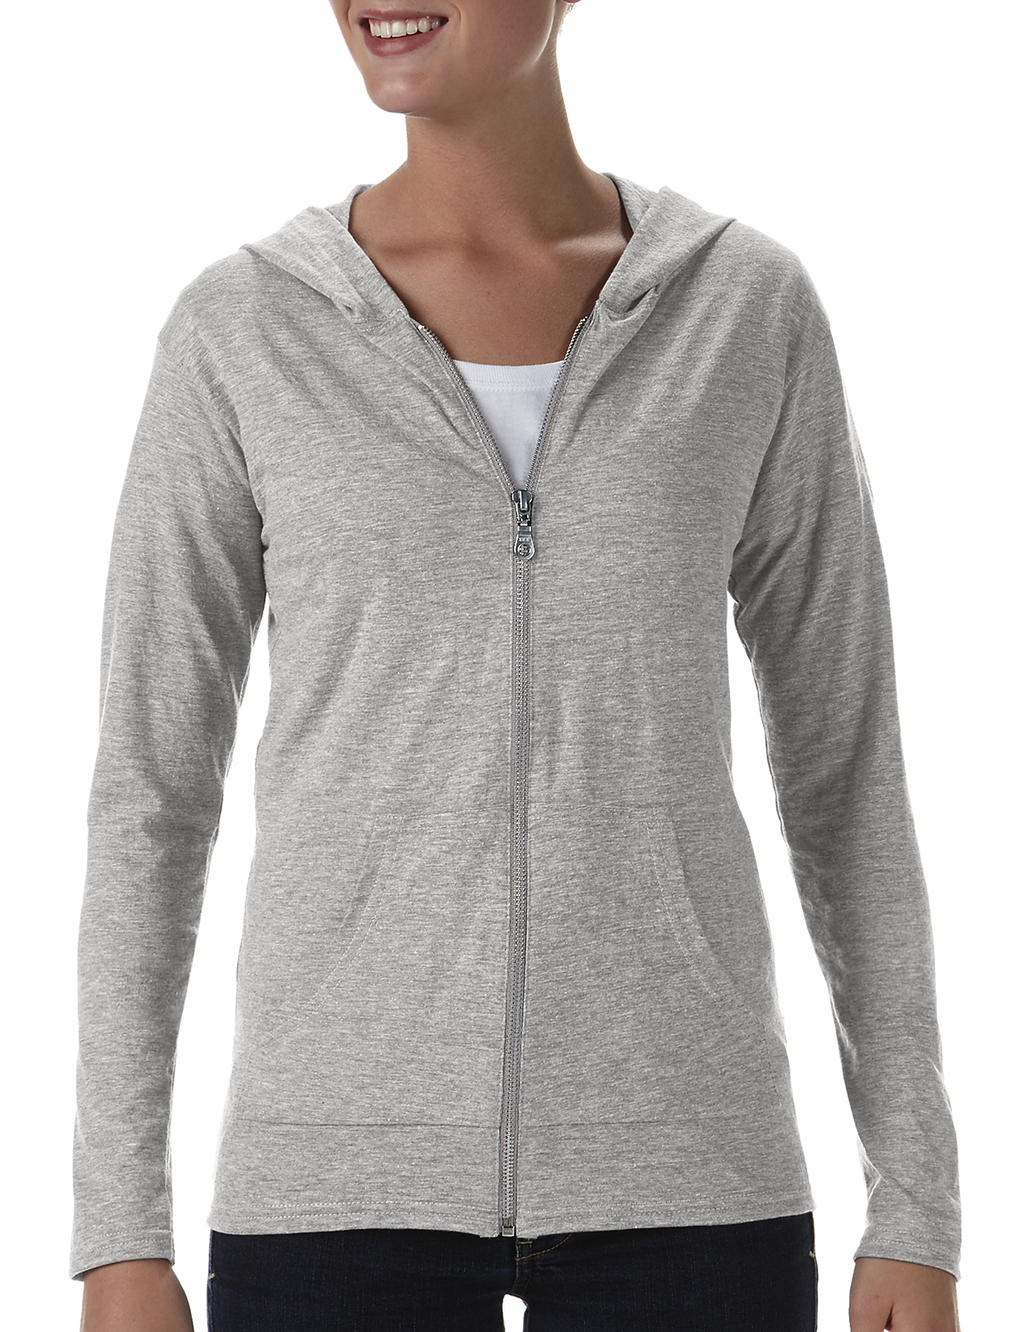 Anvil womens tri-blend full-zip hooded jacket heather grey